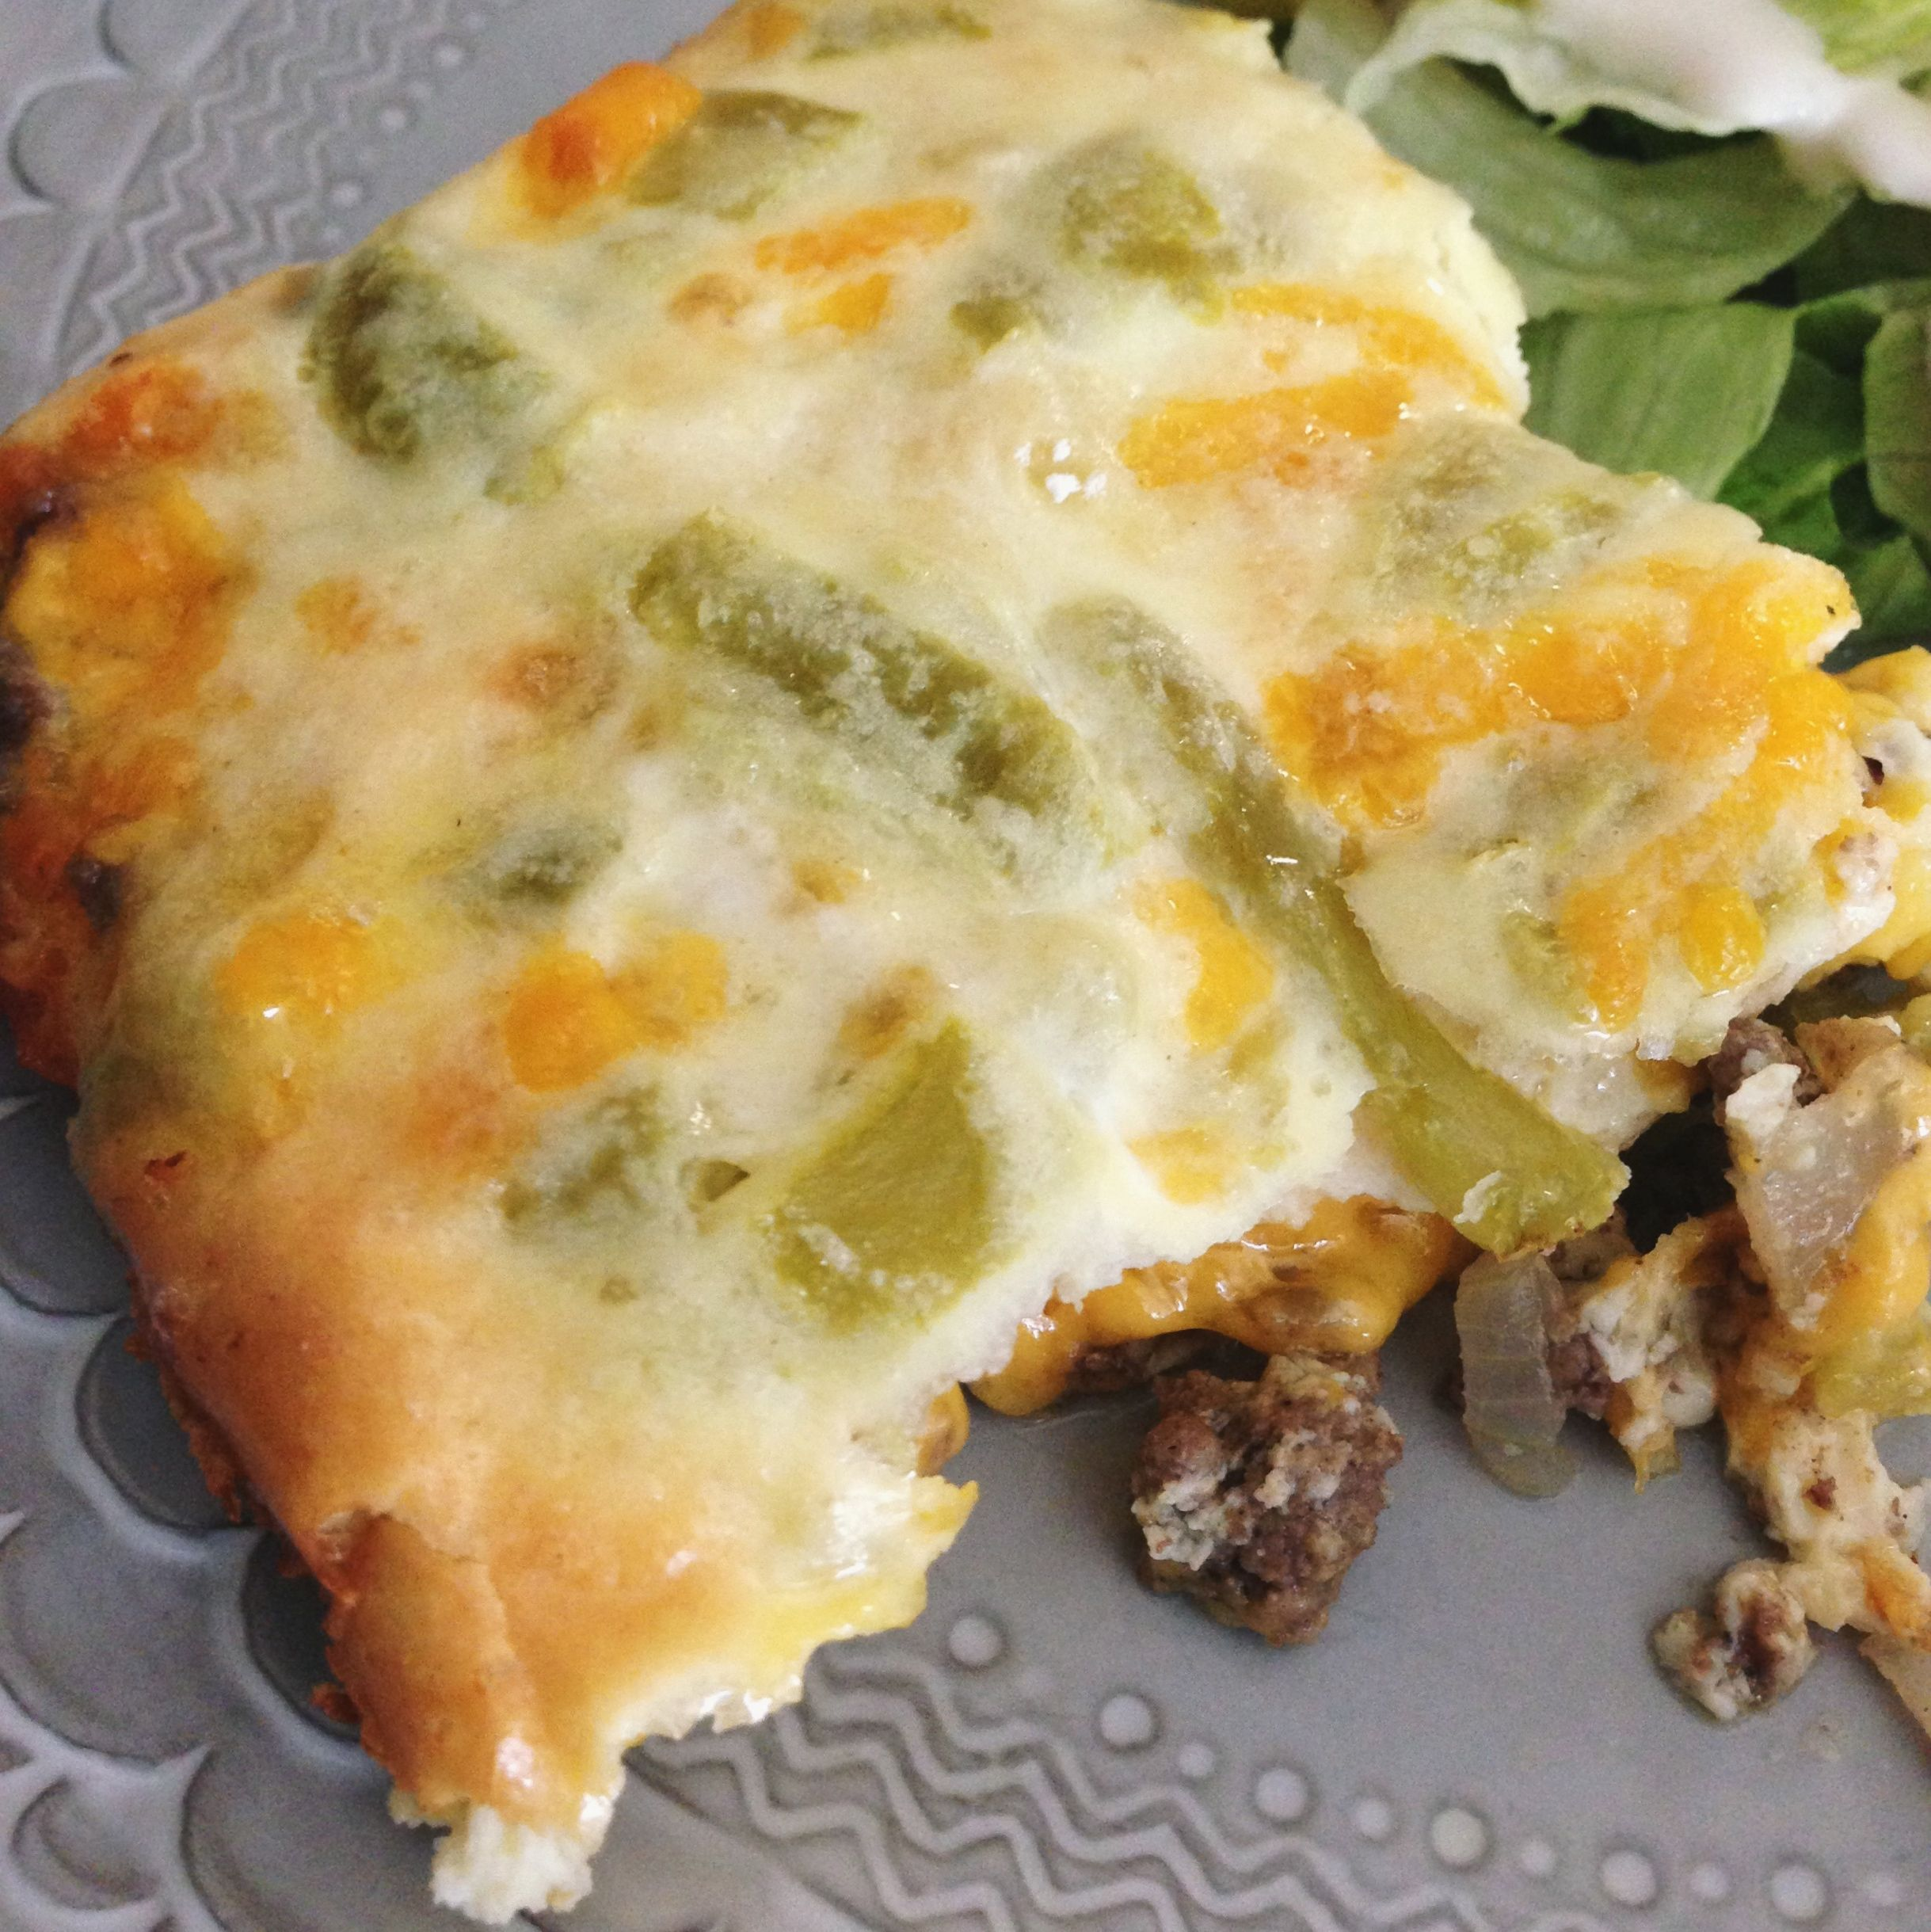 Chile Rellenos Casserole 1 2 Lb Beef 1 4 Onion Chopped 1 10 Oz Can Whole Green Chilies 1 1 2